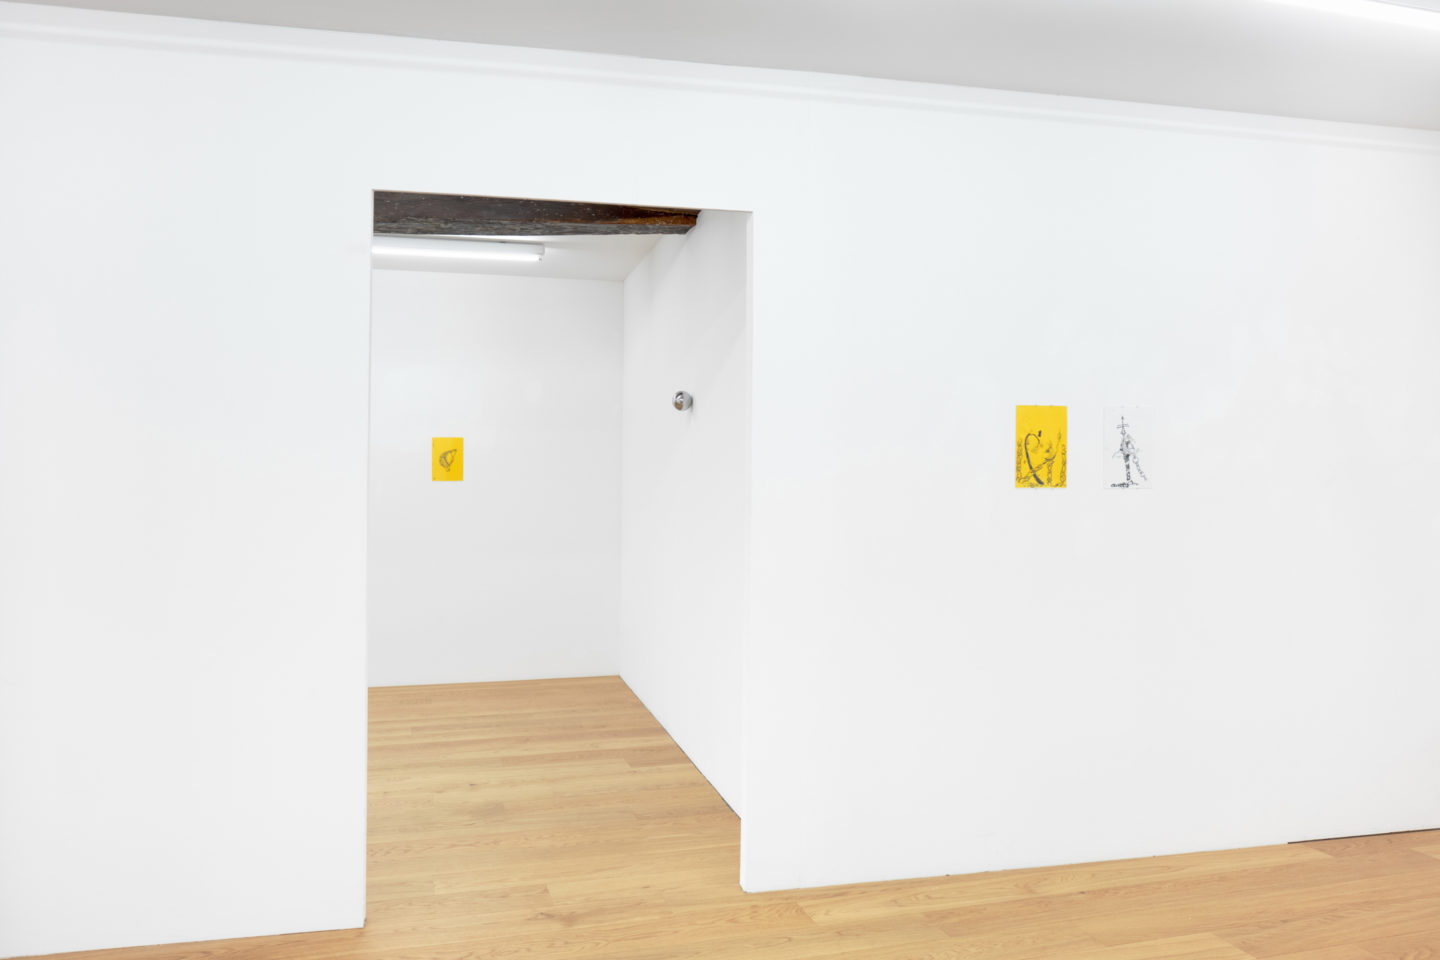 Exhibition View Groupshow «Silver Lake» with Paul Czerlitzki, Anna Fehr, Elin Gonzalez at Kirchgasse, Steckborn, 2018 / Courtesy: the artist and Kirchgasse